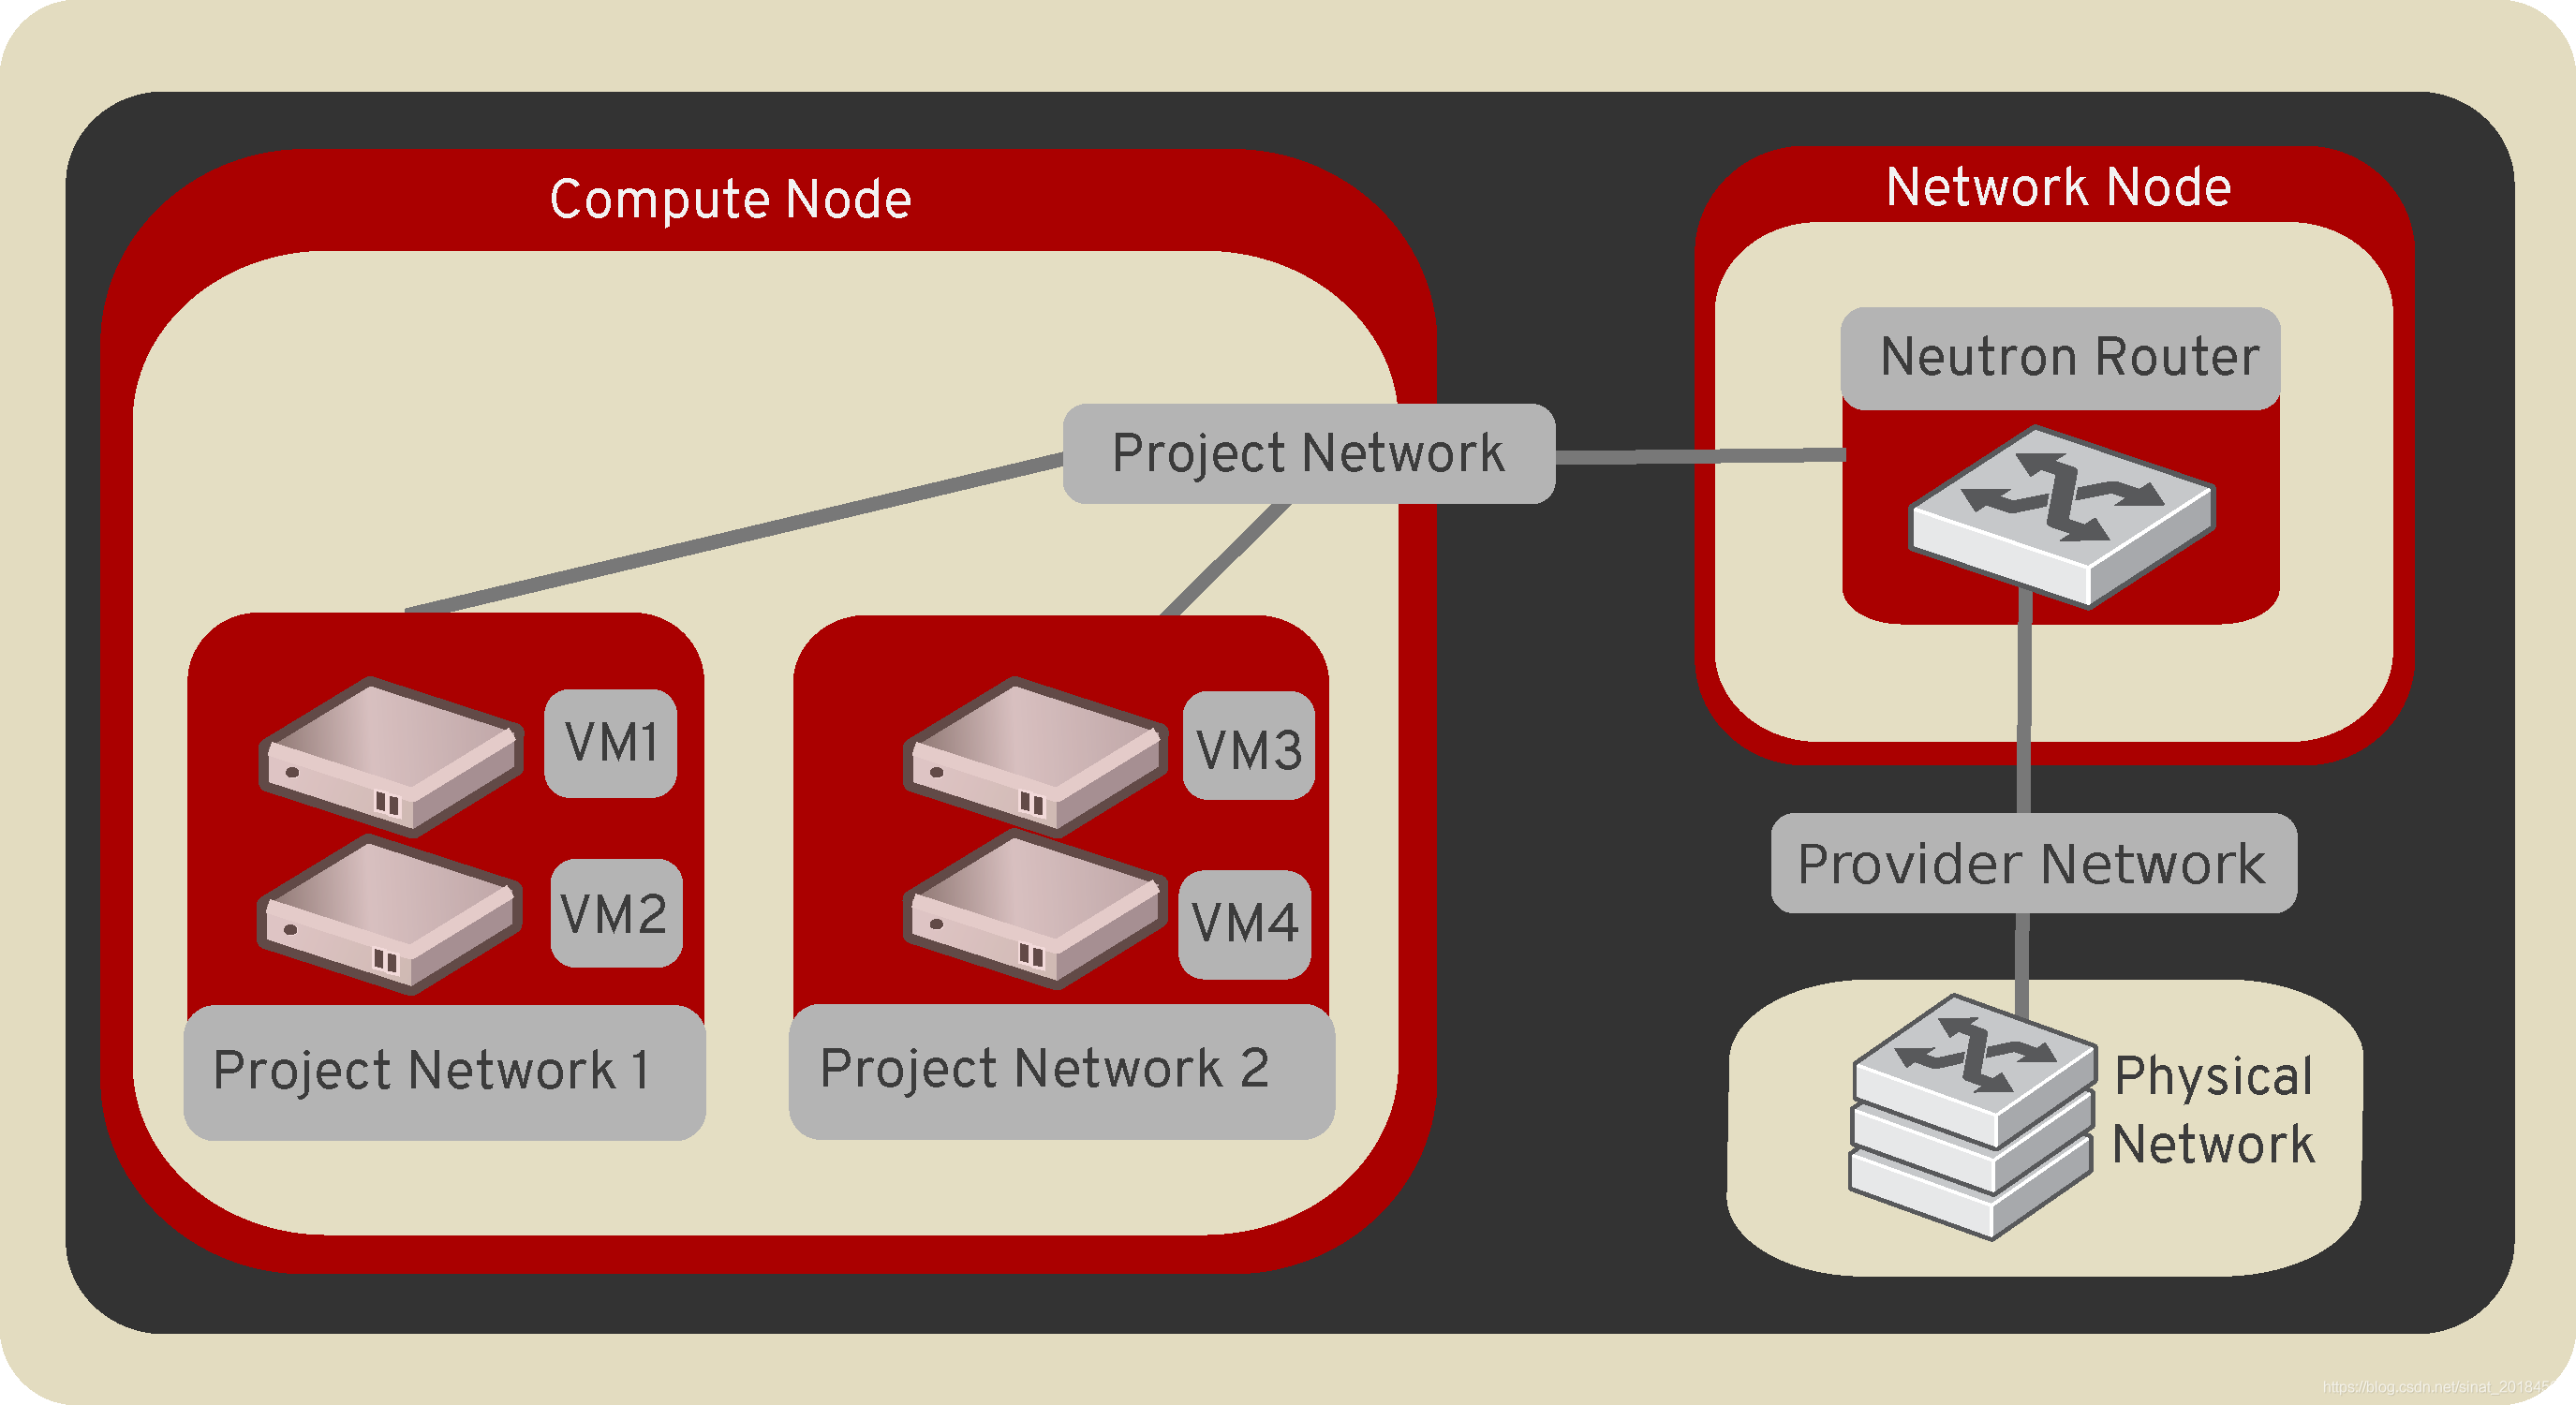 Project and provider networks